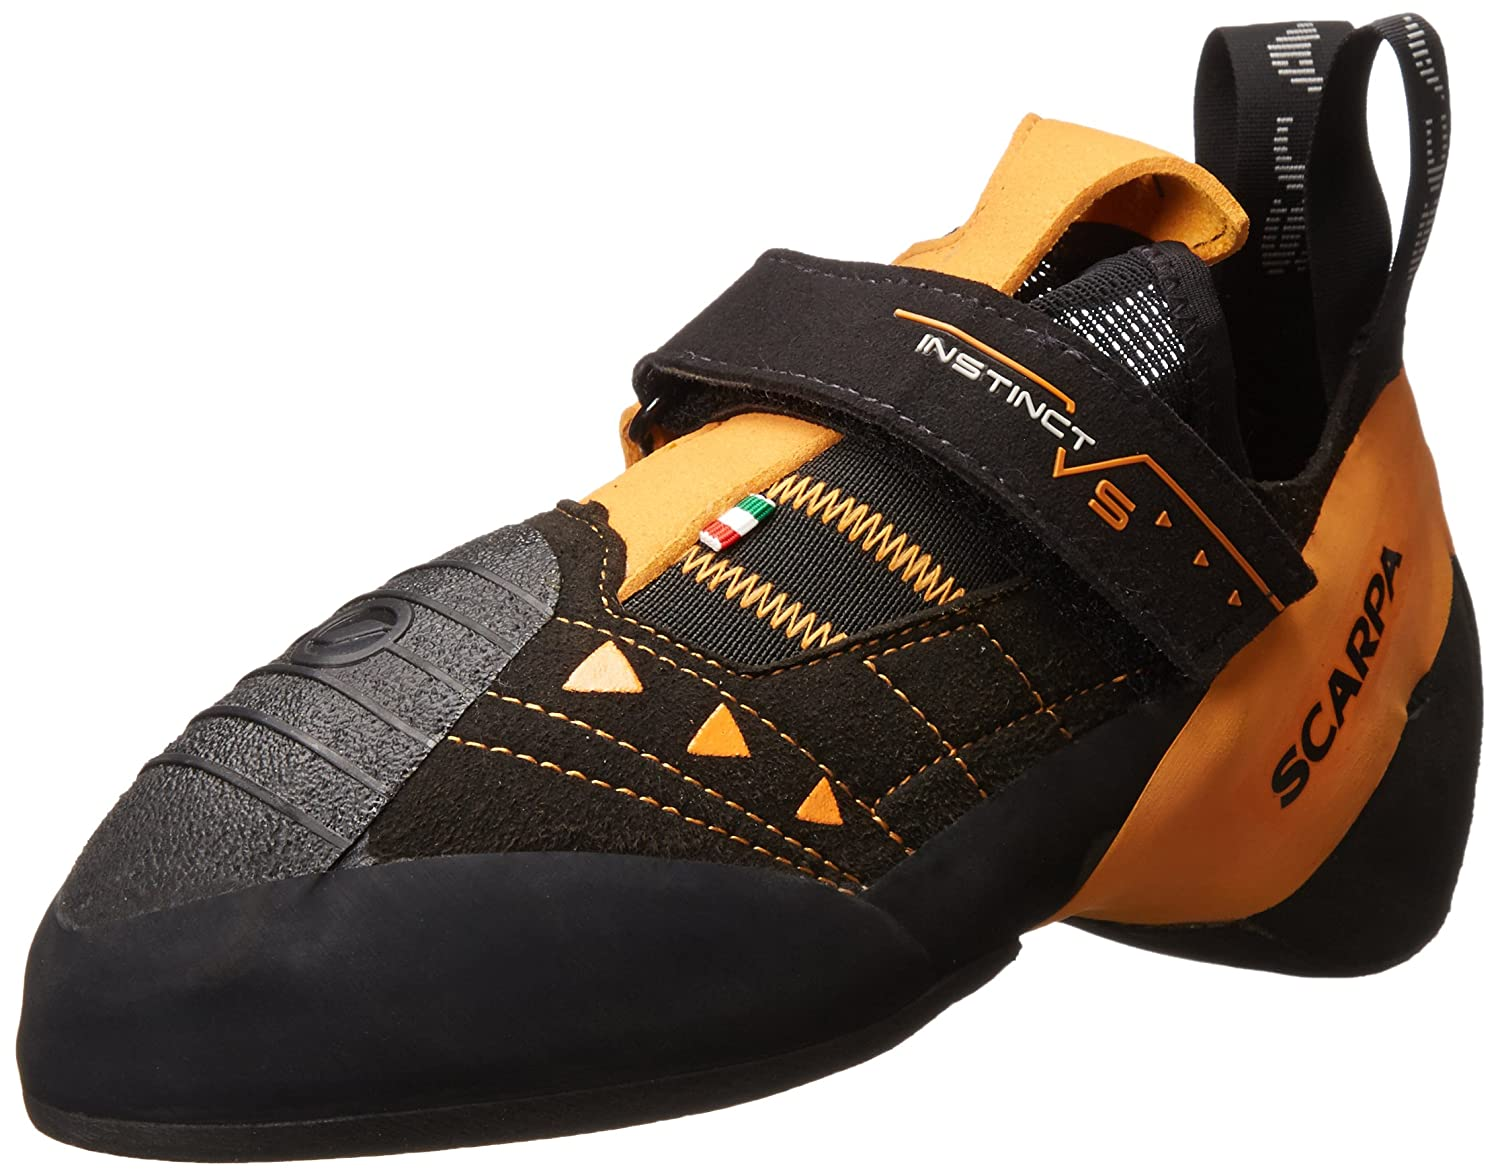 Scarpa Men s Instinct VS Climbing Shoe